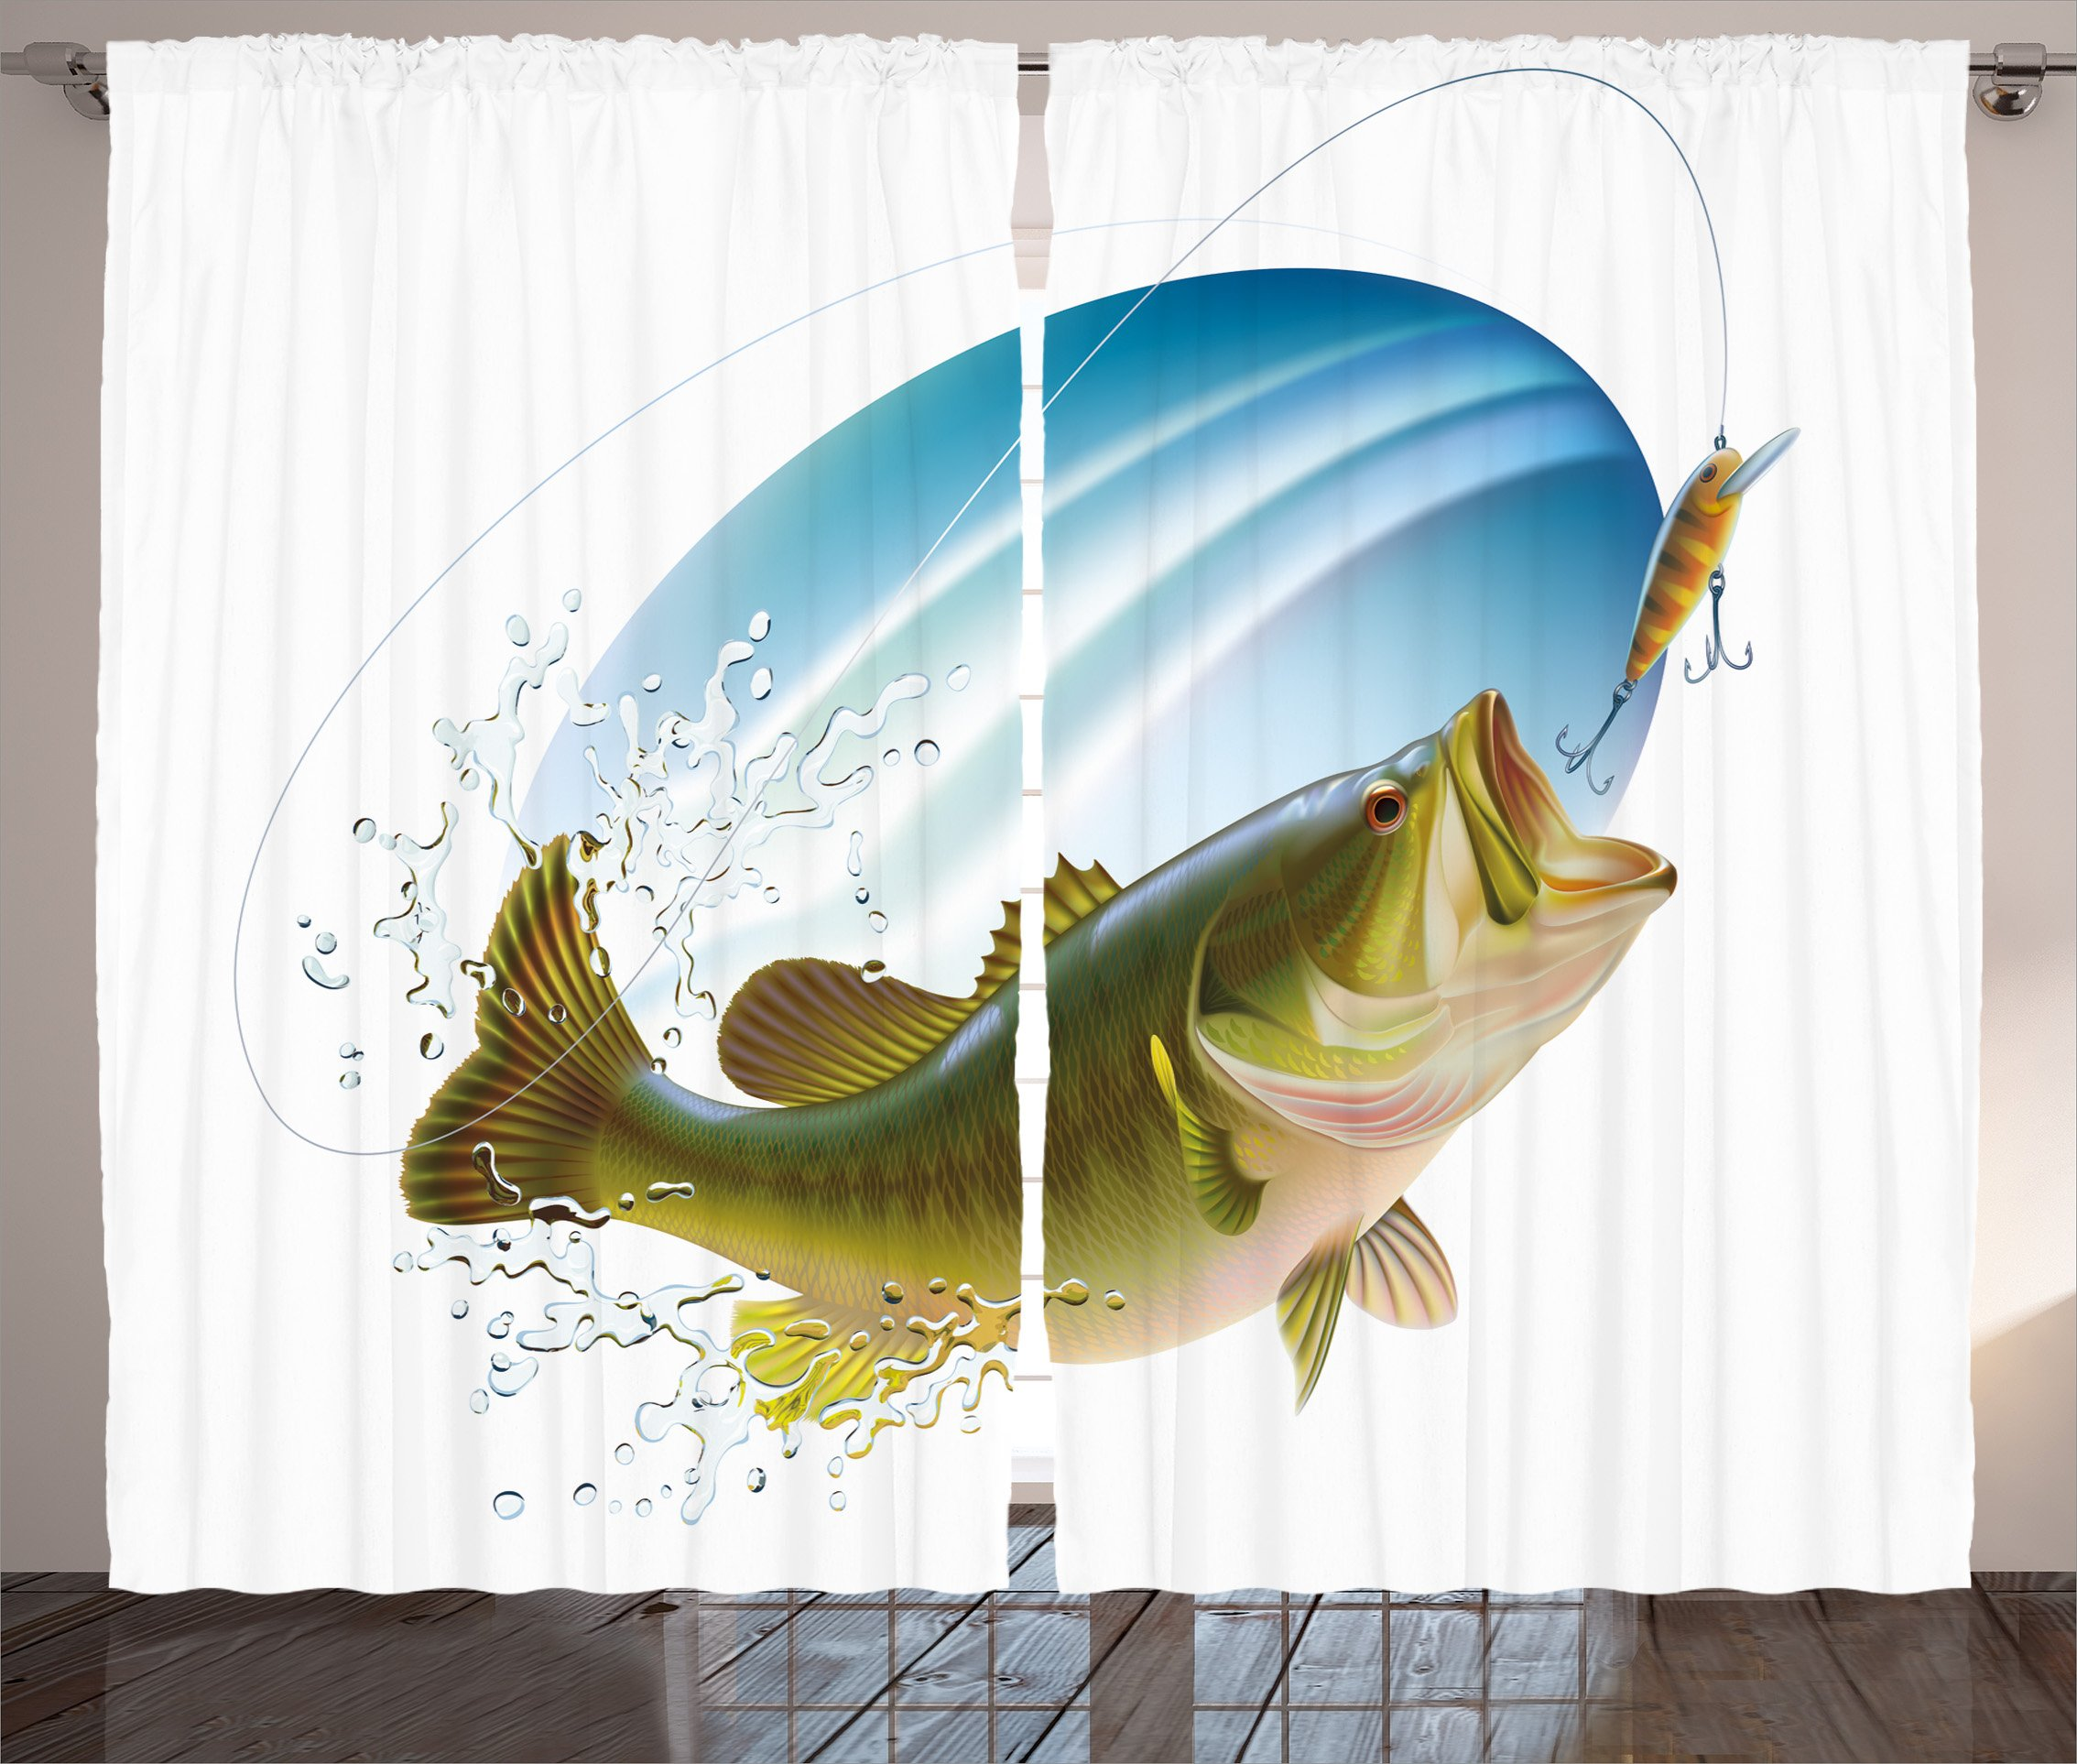 "Ambesonne Fishing Curtains, Largemouth Sea Bass Catching a Bite in Water Spray Motion Splashing Wild Image, Living Room Bedroom Window Drapes 2 Panel Set, 108"" X 84"", Green Blue"